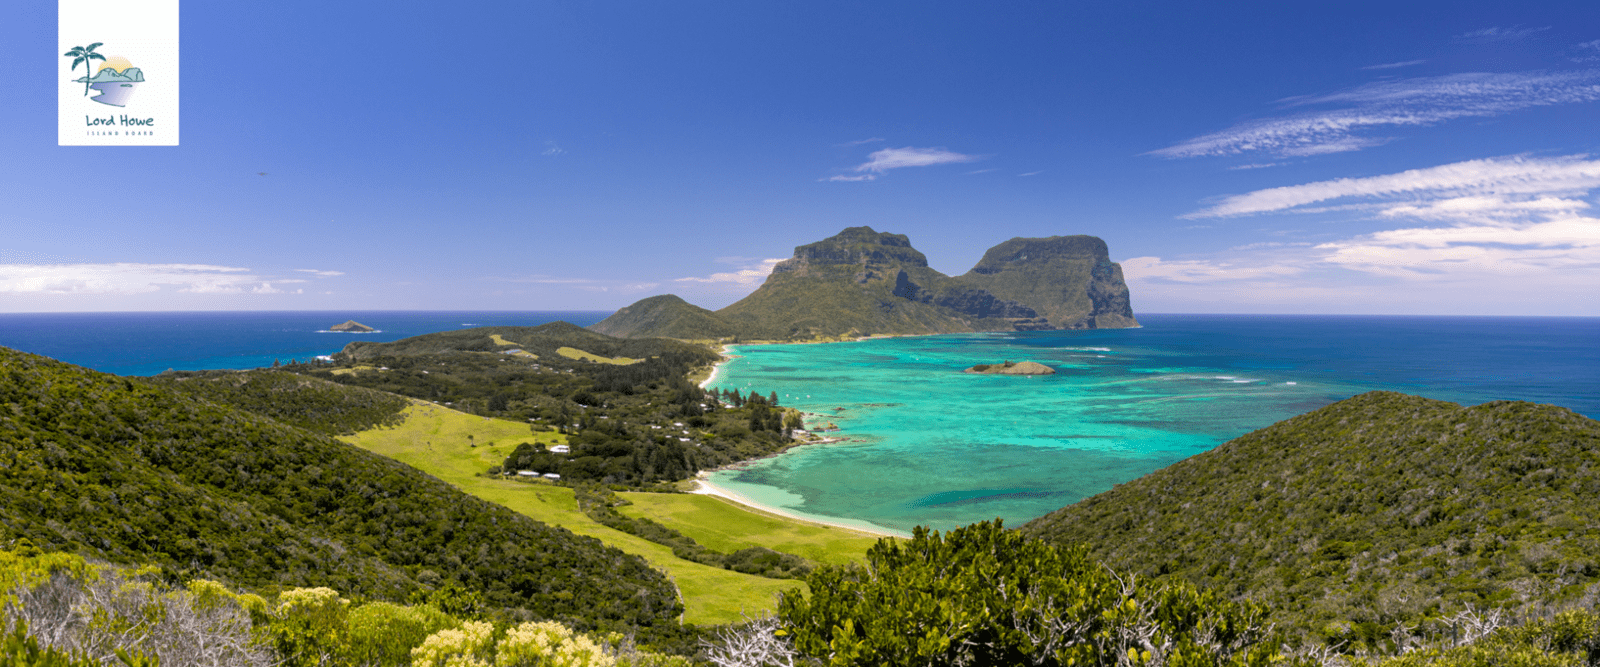 Providing data insights critical to ecosystem restoration on Lord Howe Island